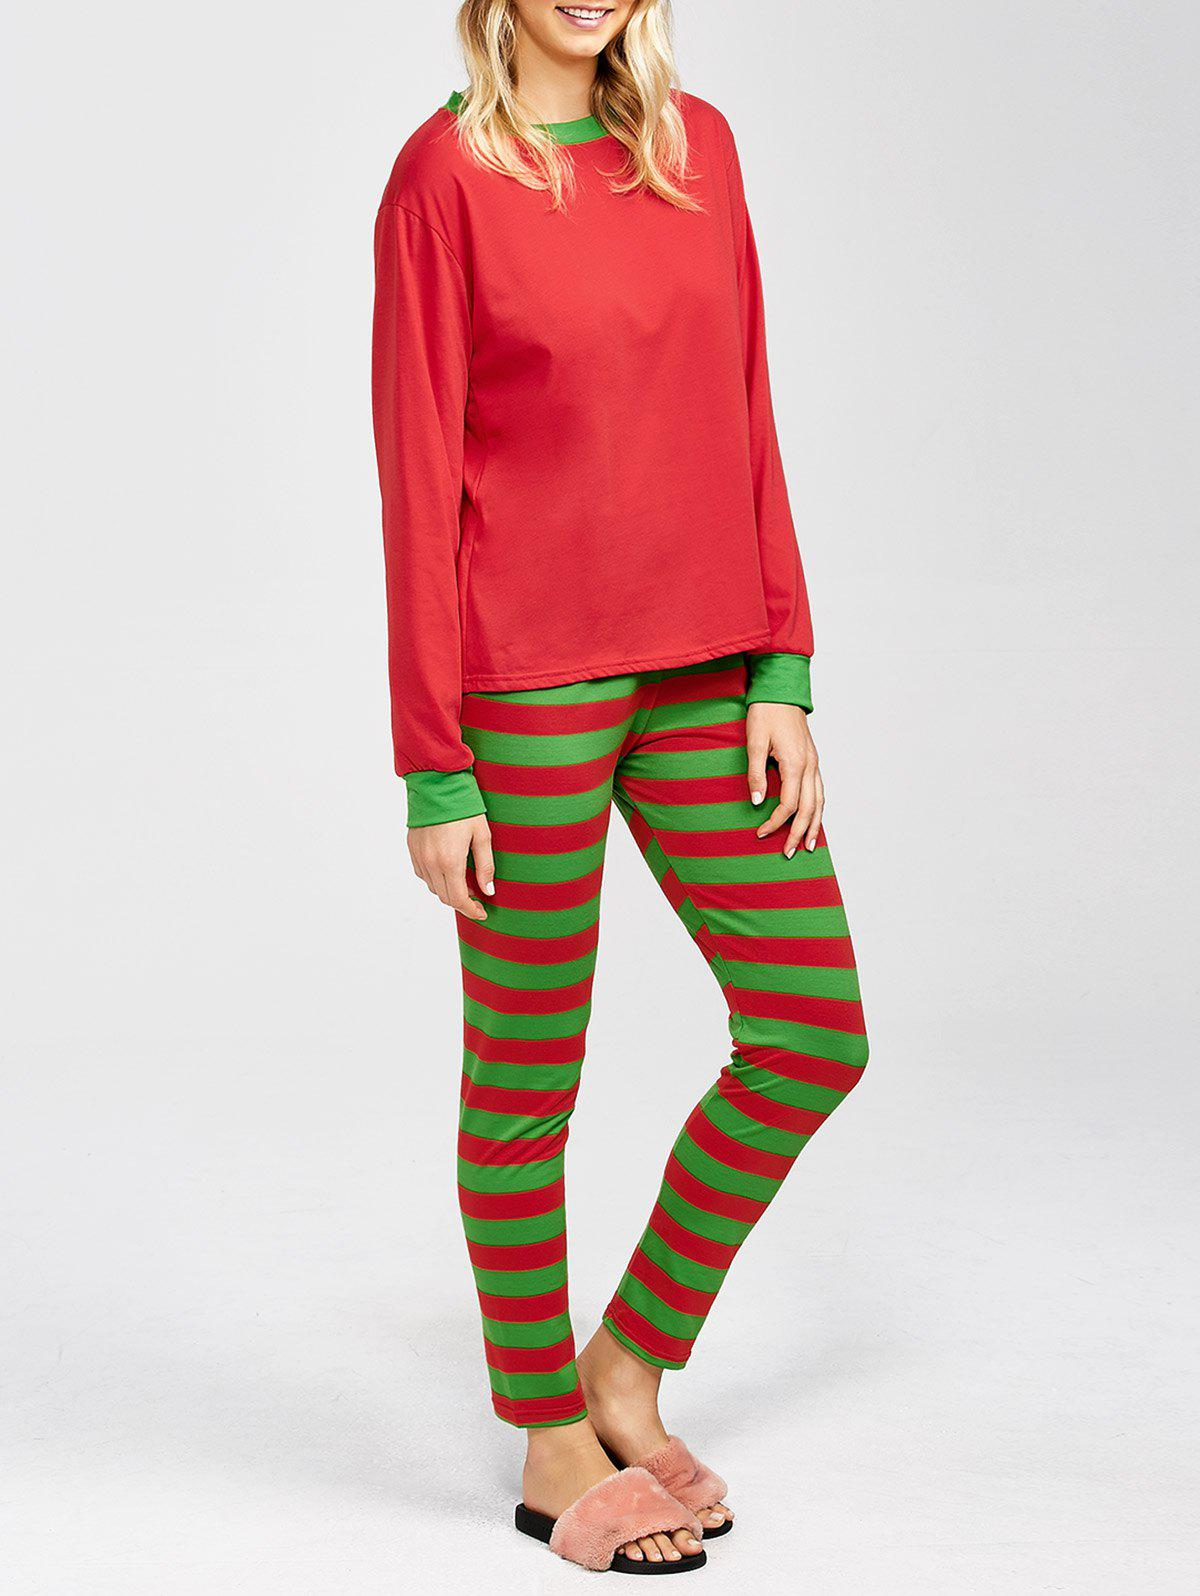 Two Tone Striped Loungewear Suit - RED/GREEN M